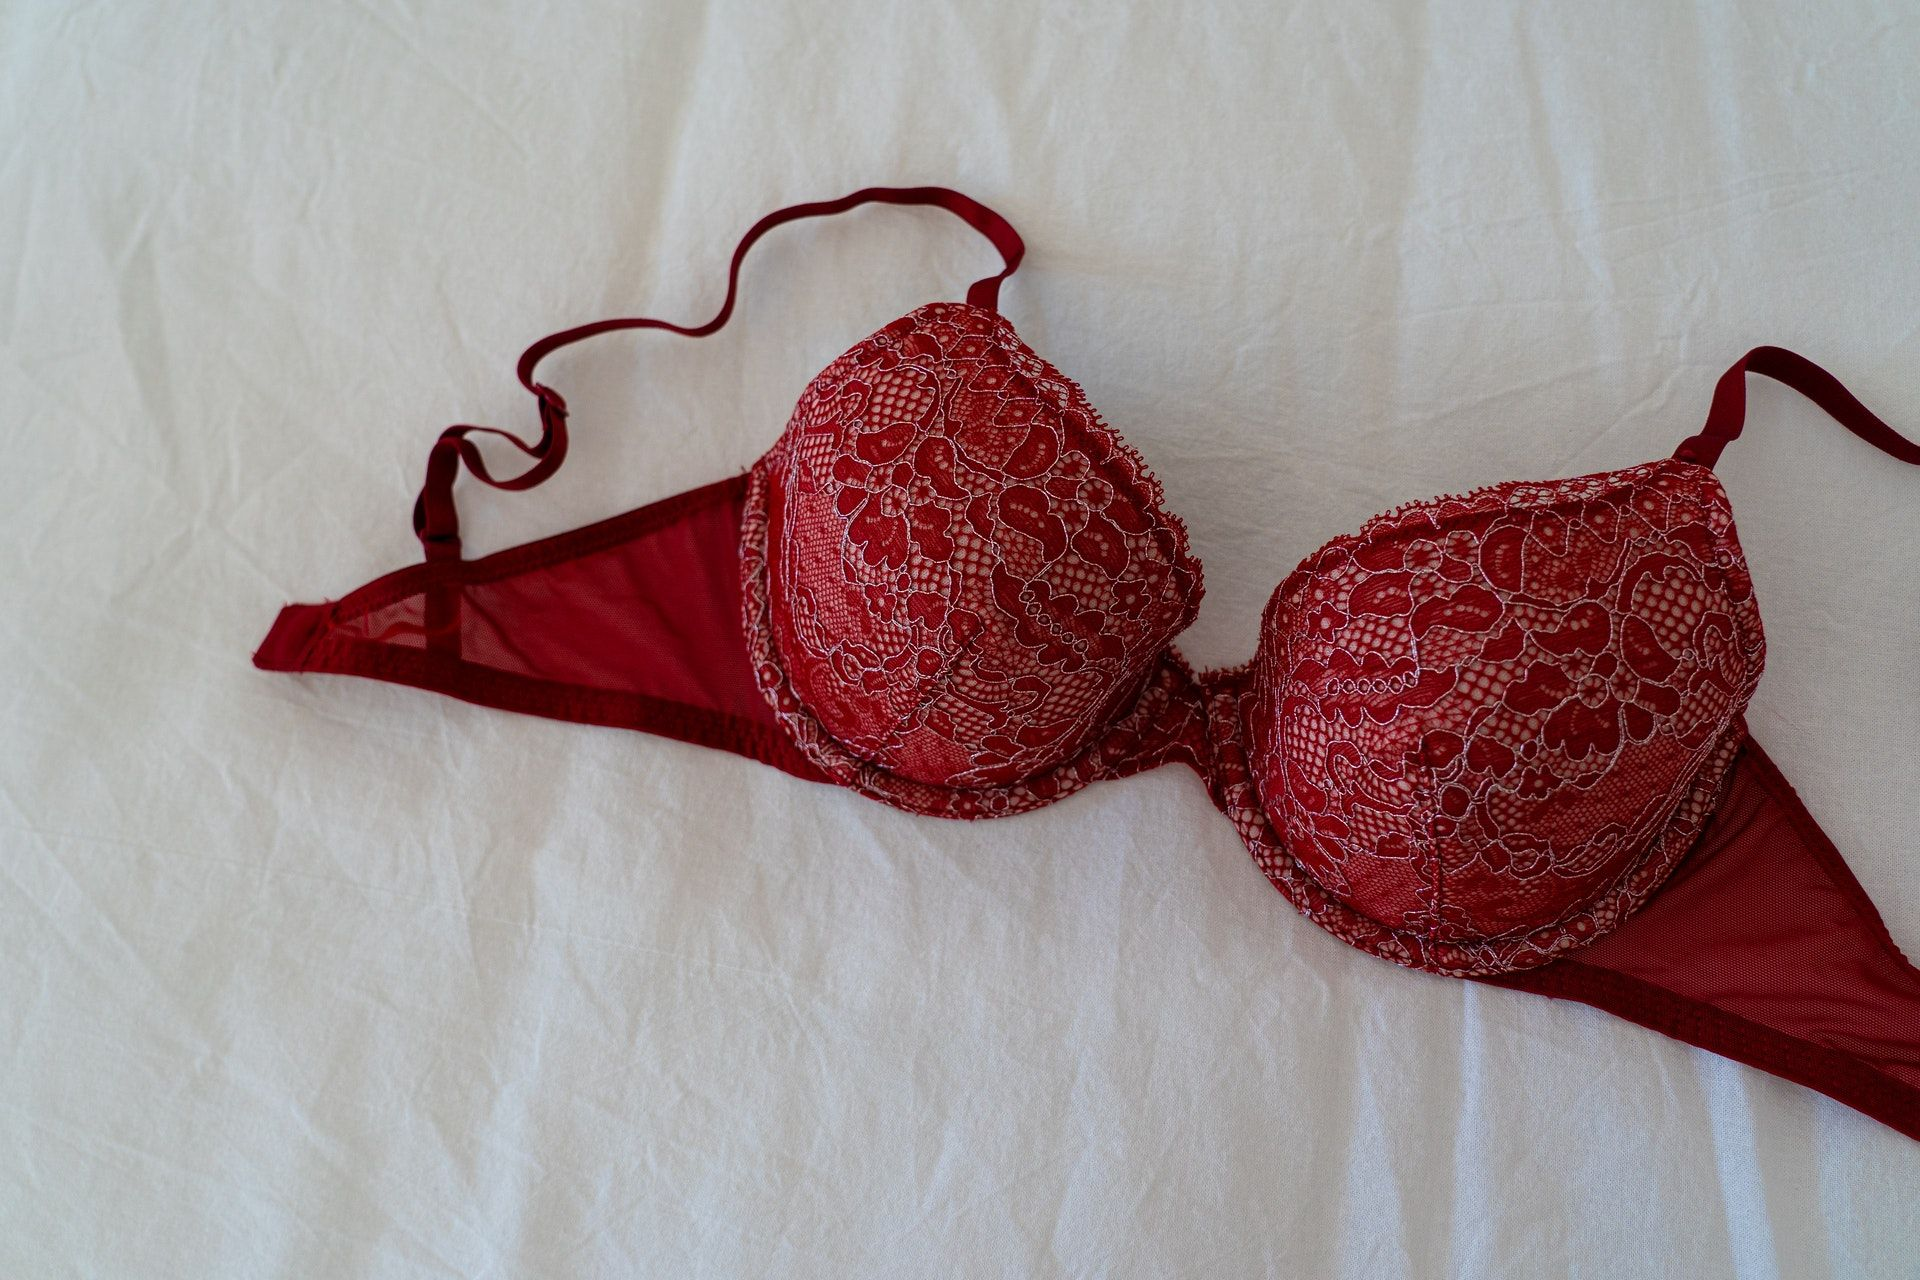 How to Measure Bra Size – 3 Easy Steps